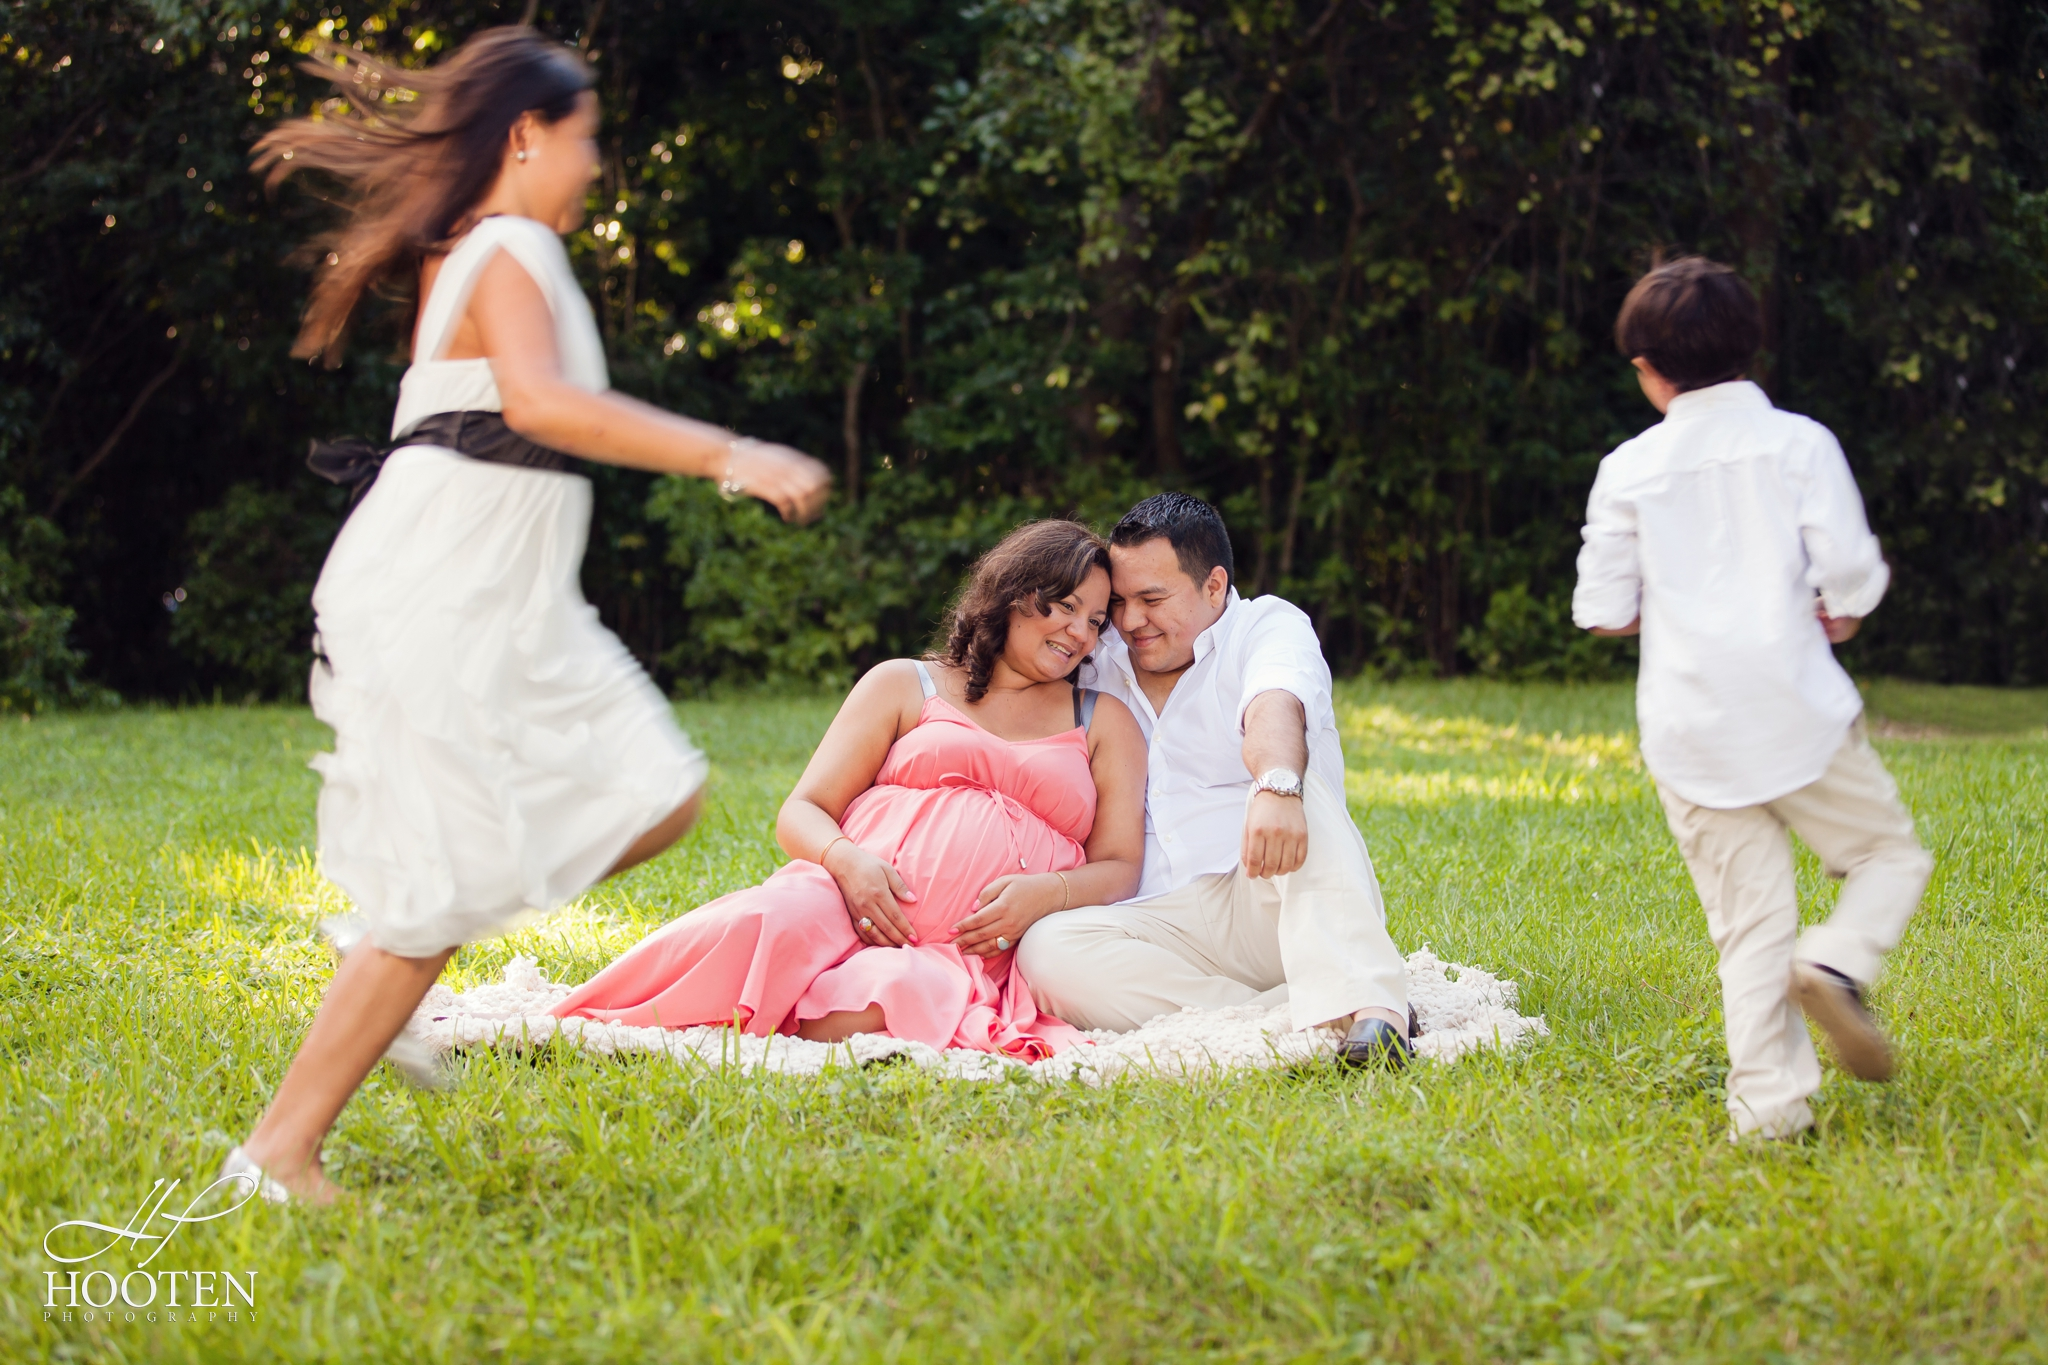 Miami-Maternity-Photography-Abdor-8004.jpg